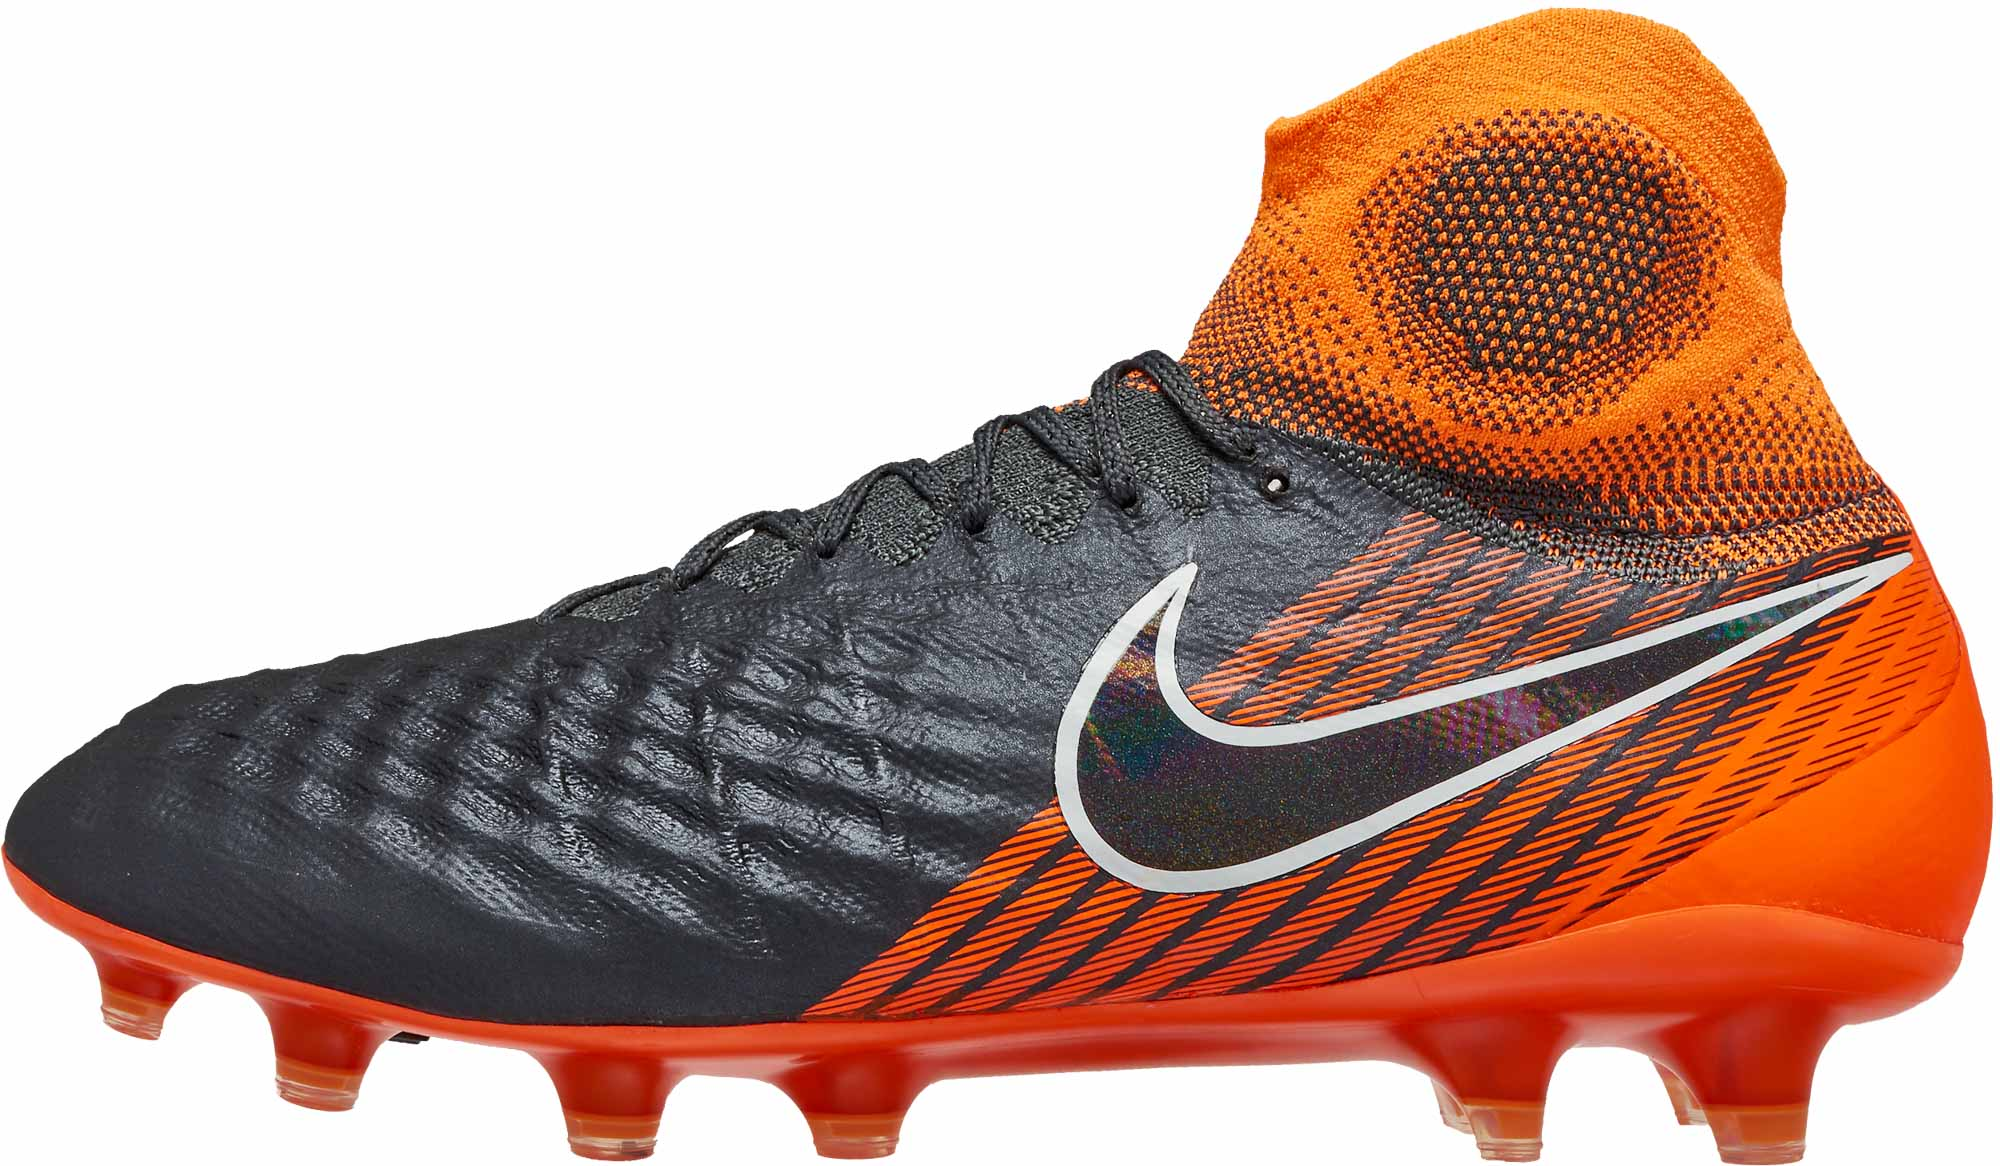 nike magista obra 2 elite df fg nike fast af pack. Black Bedroom Furniture Sets. Home Design Ideas